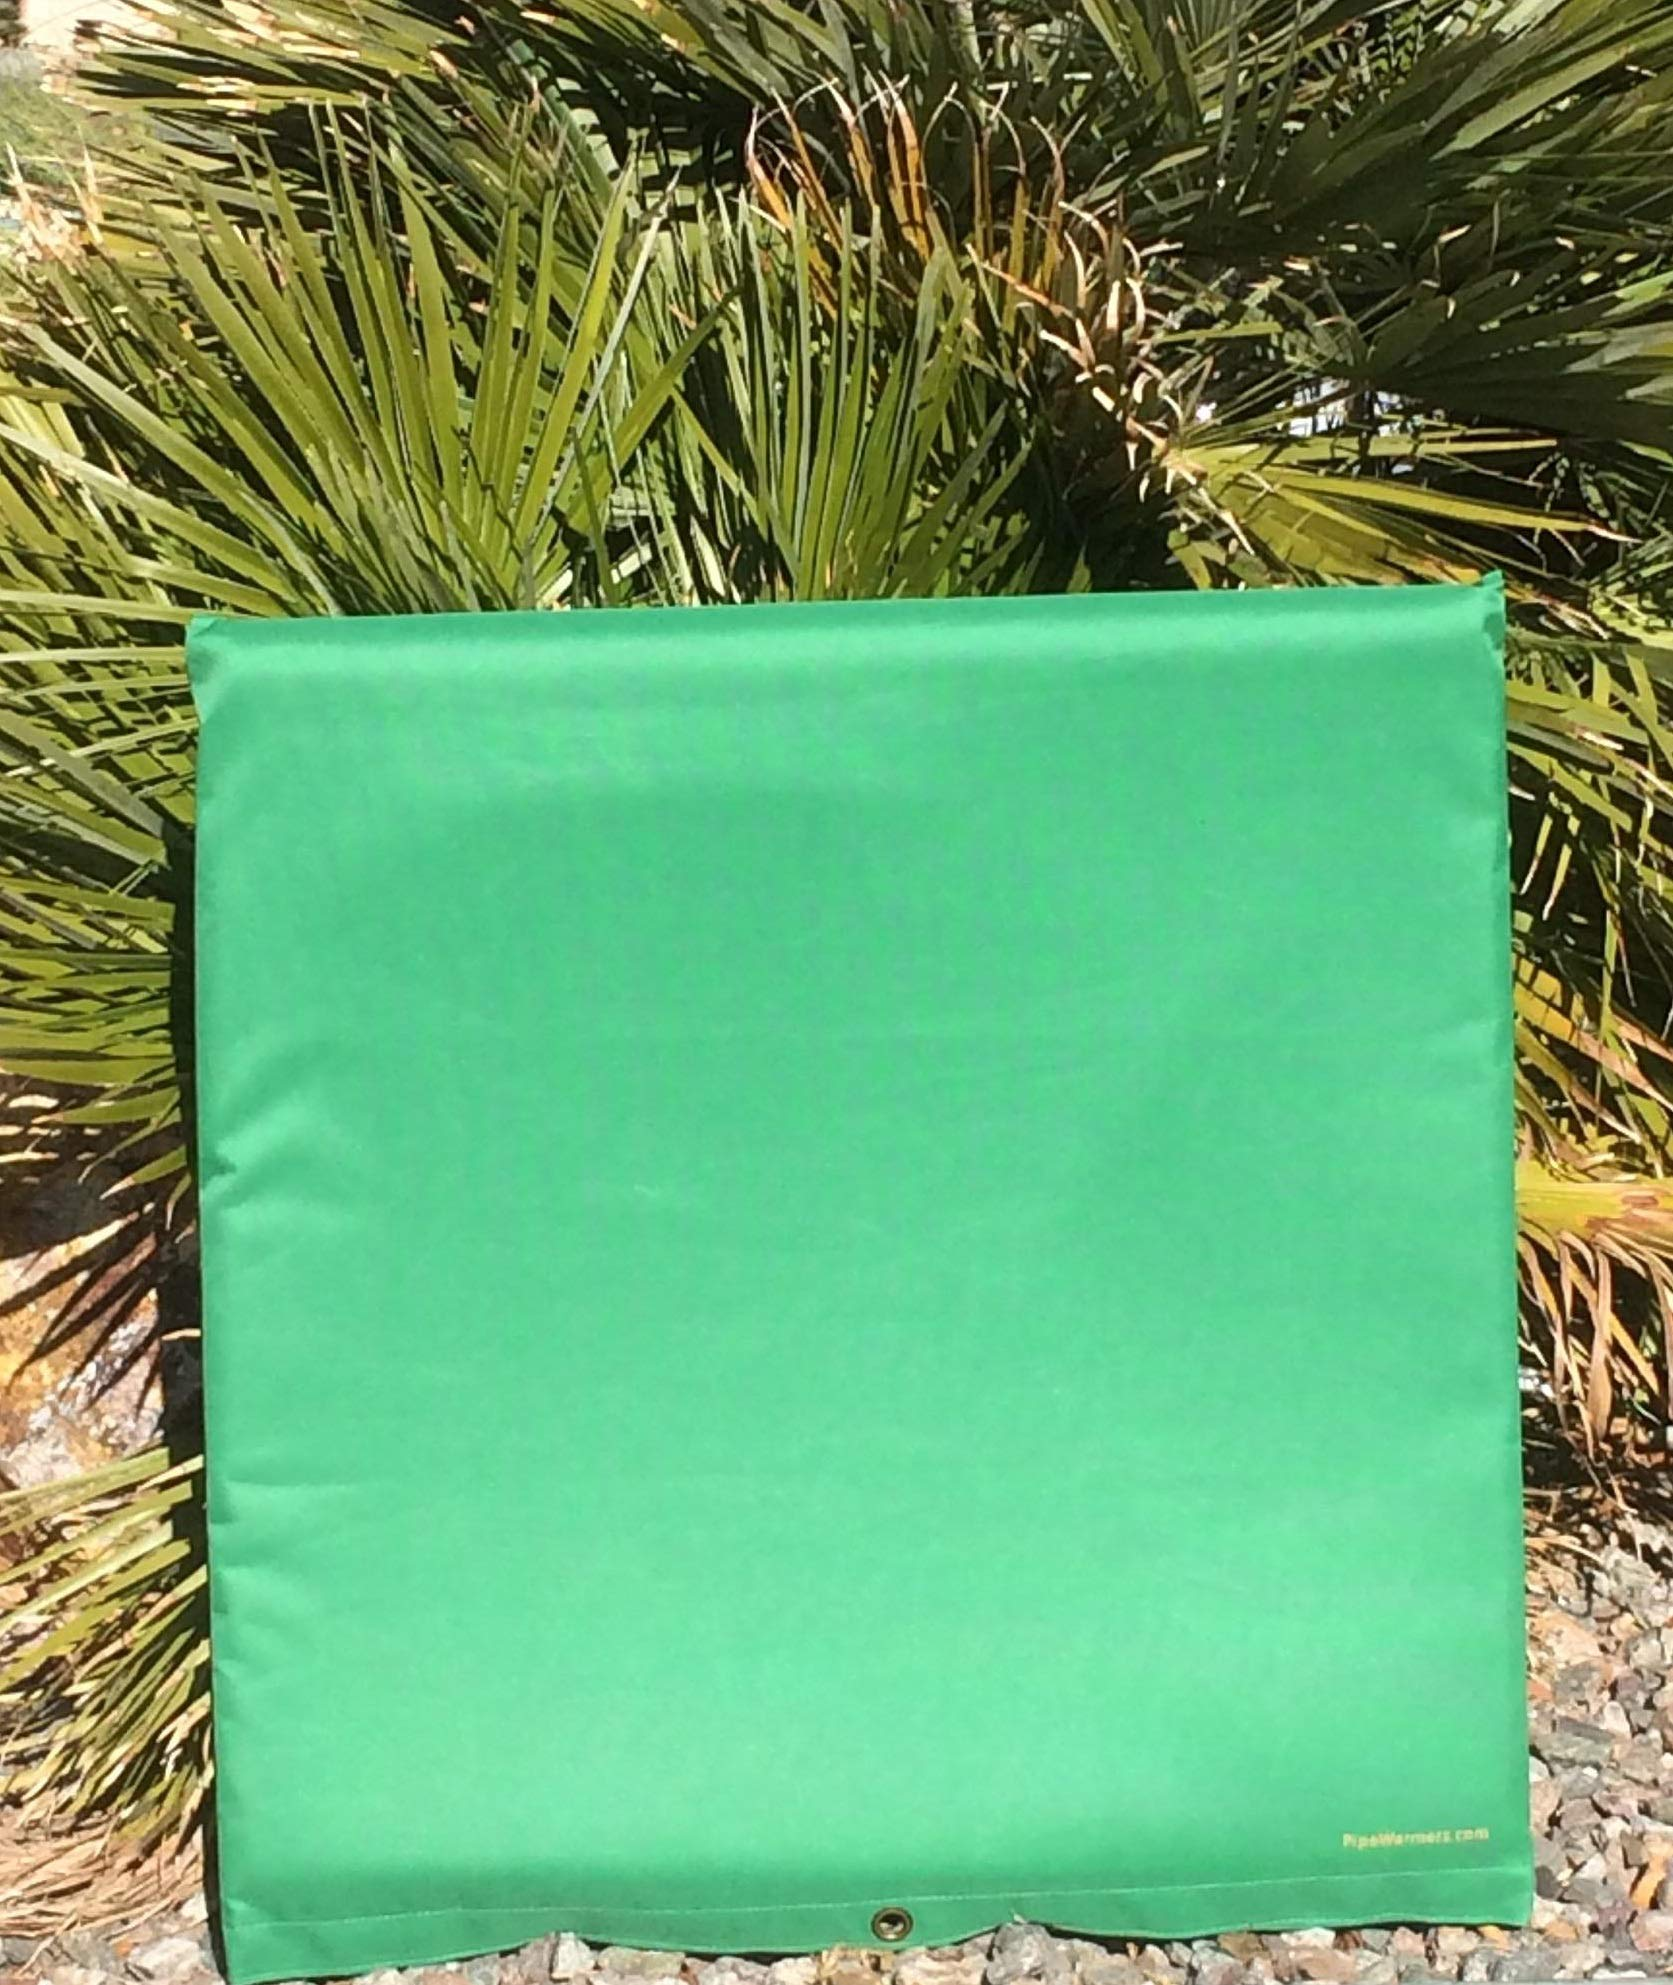 Insulation pouch for outdoor Pipes (24 x 24, green) by PipeWarmers